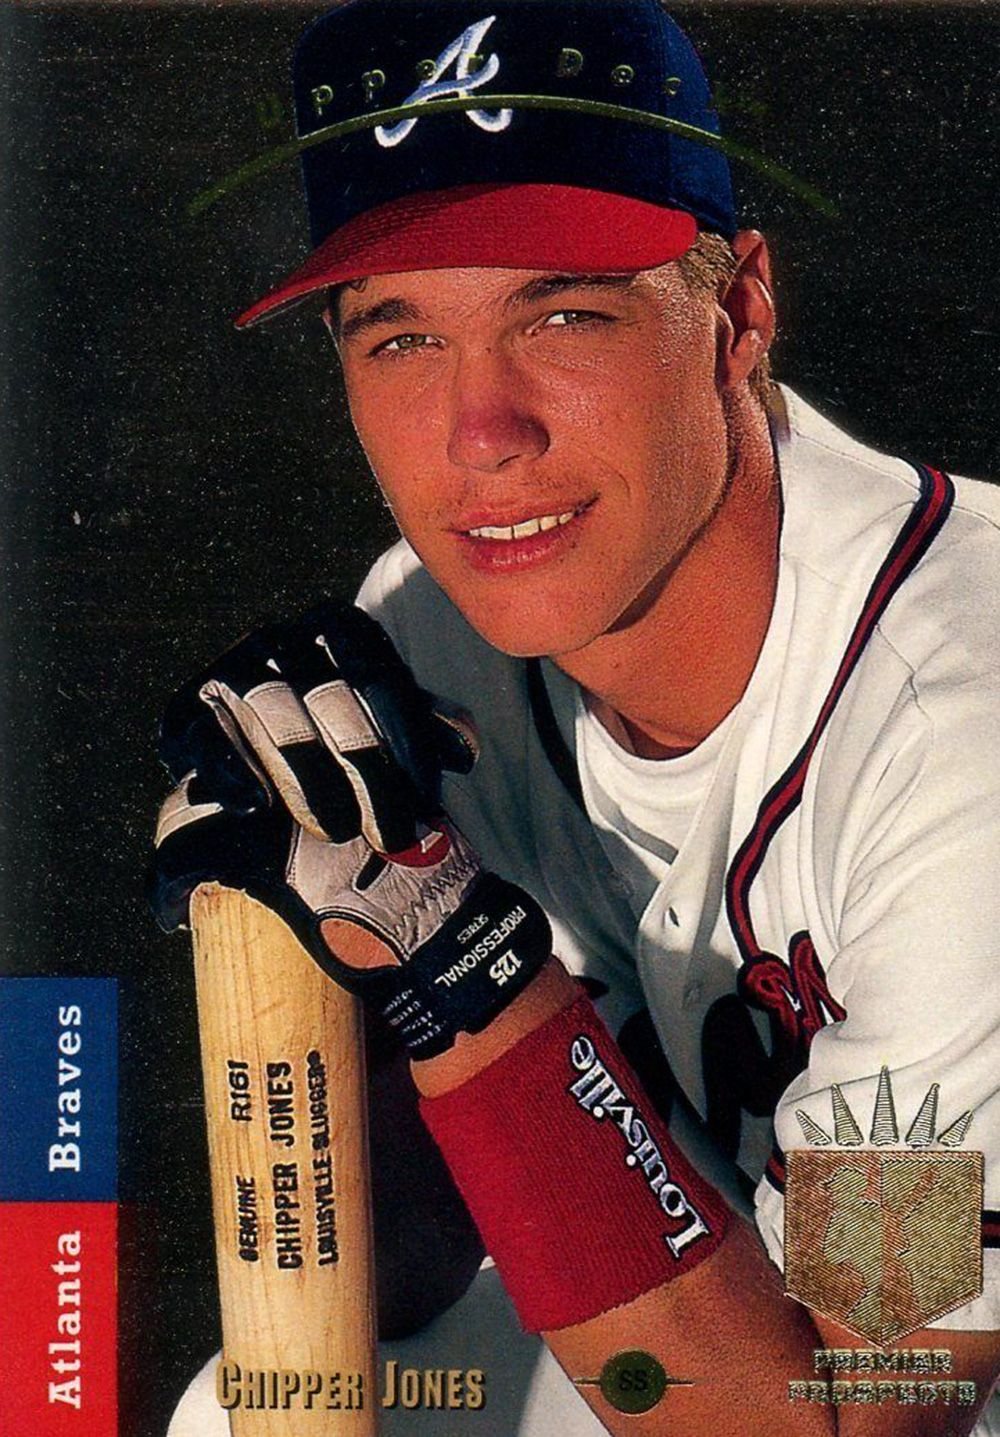 We Love The 80s And 90s Baseball Cards The Top 15 Sets